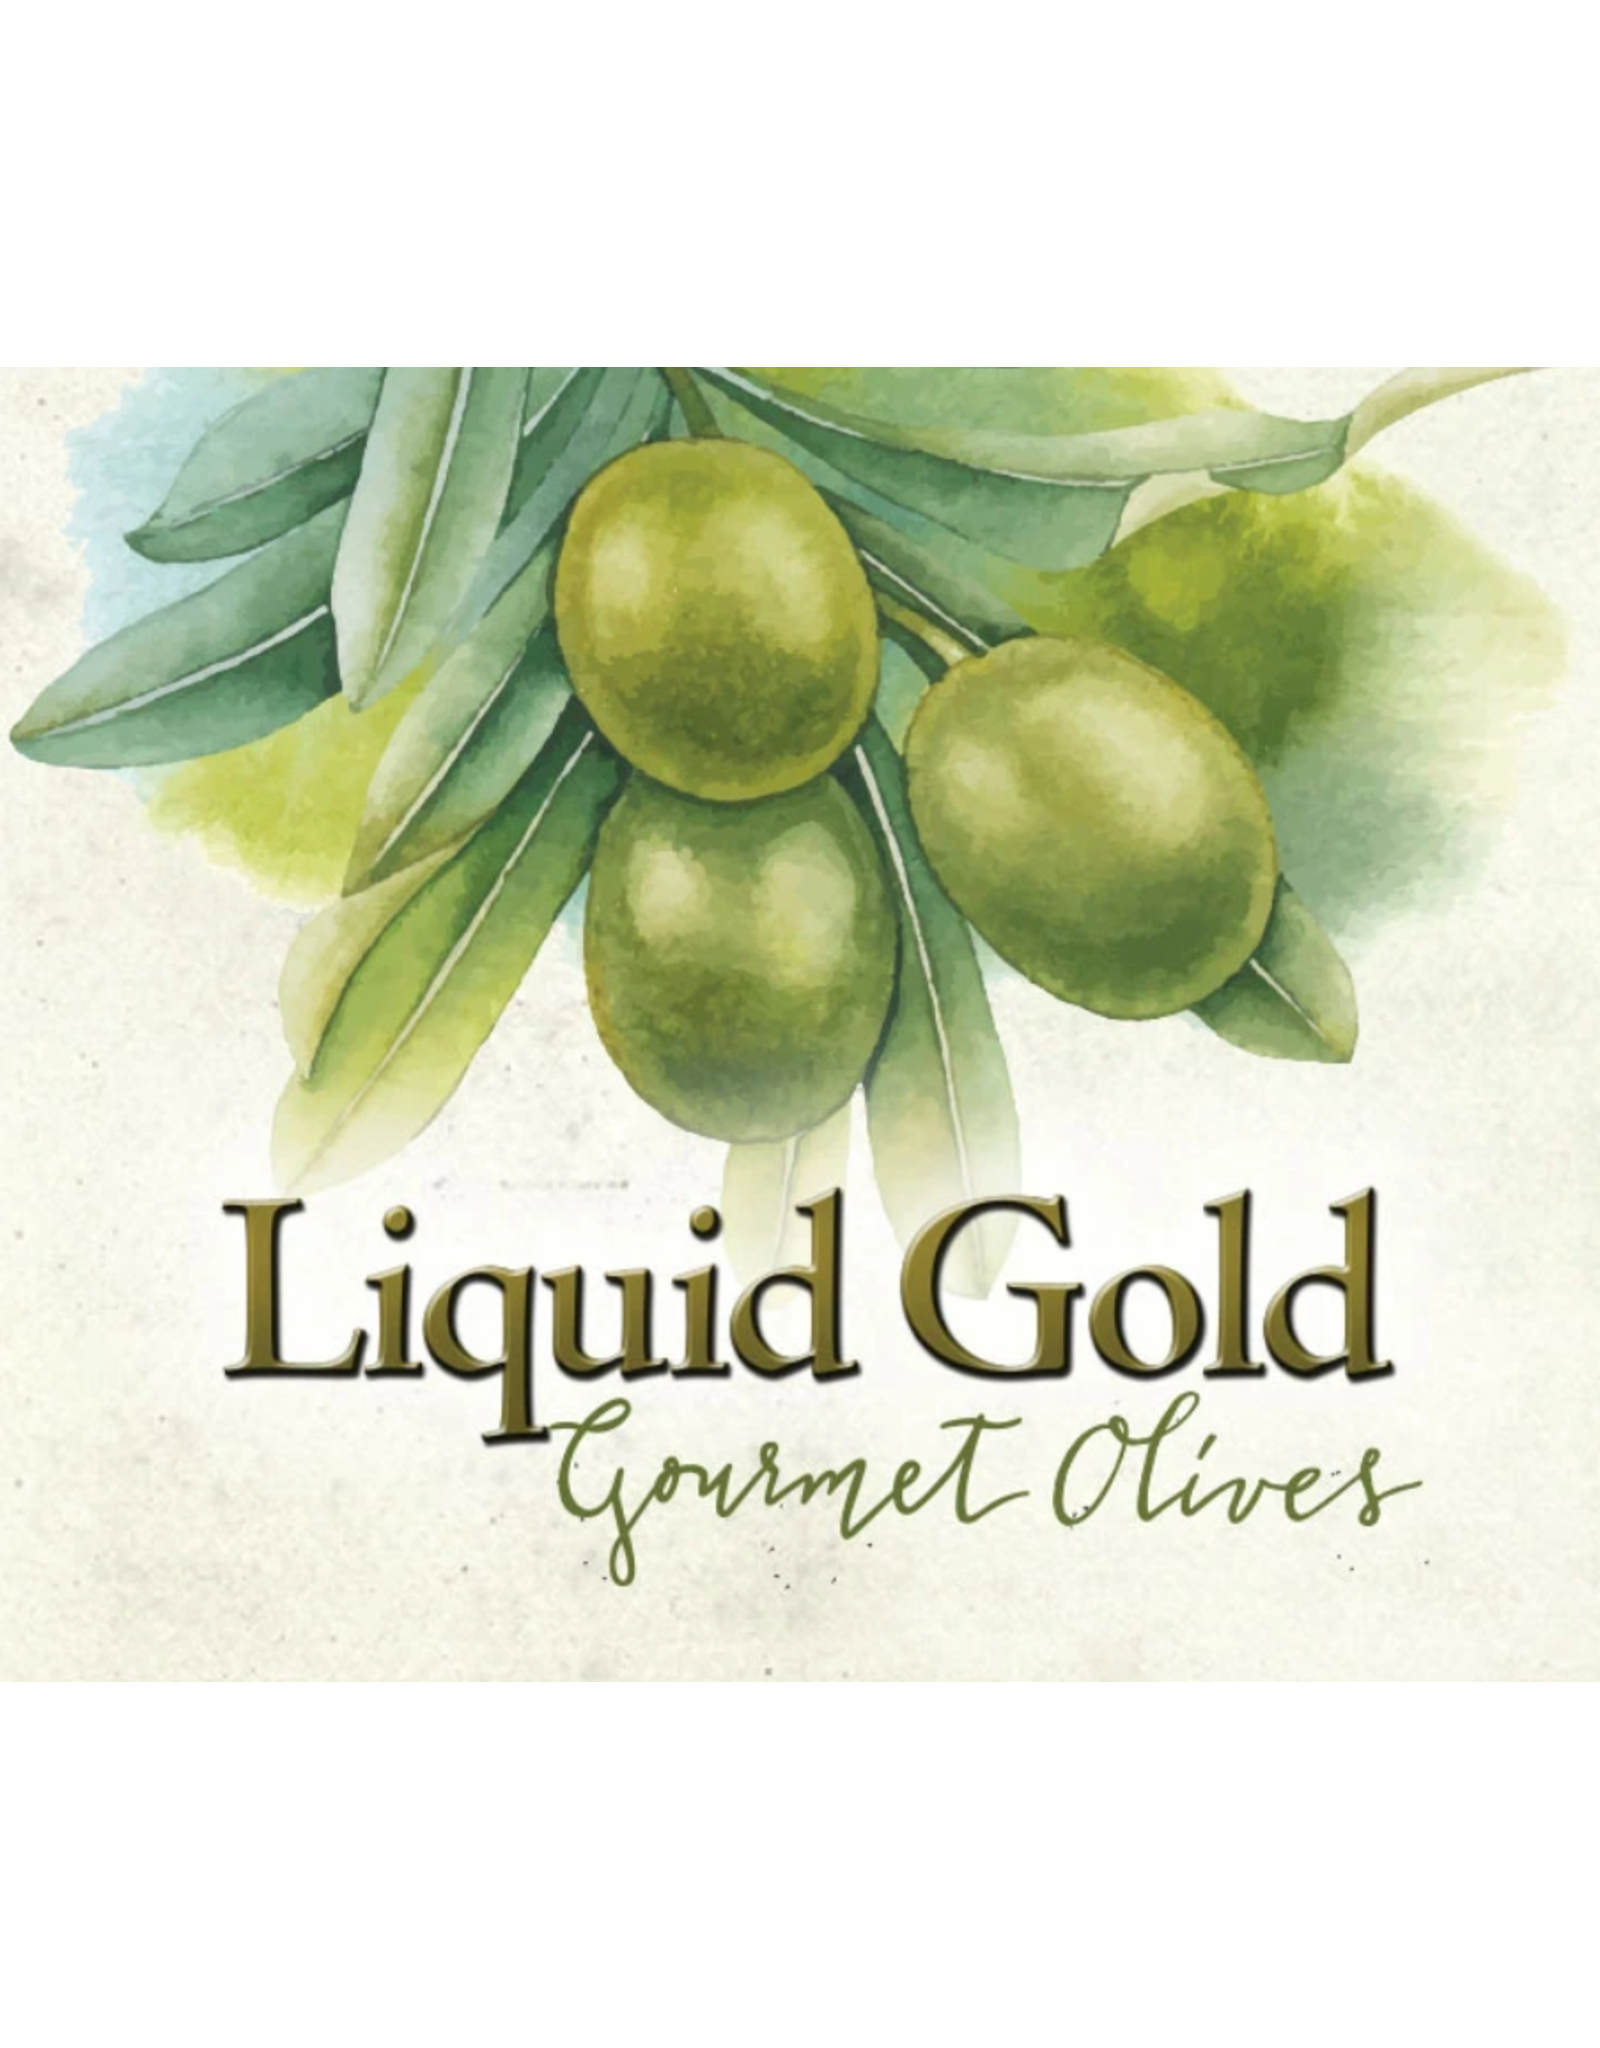 Liquid Gold Olive Oils & Vinegars Inc Liquid Gold, Jalapeno Stuffed Olives